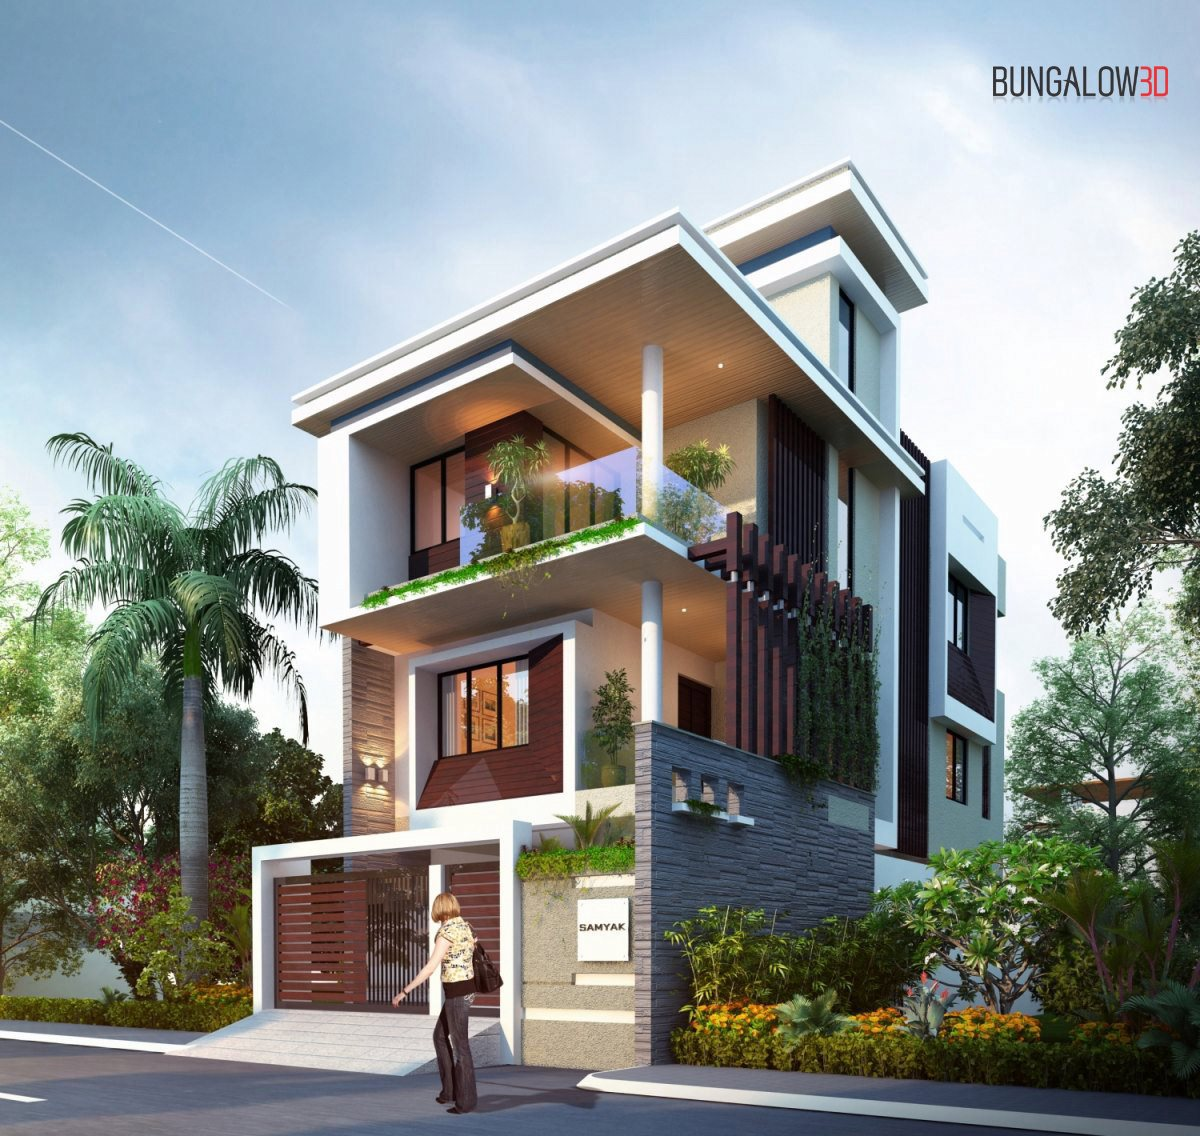 3D rendering 3D visualization service architectural 3D visualization 3D architecture studio bungalow day view